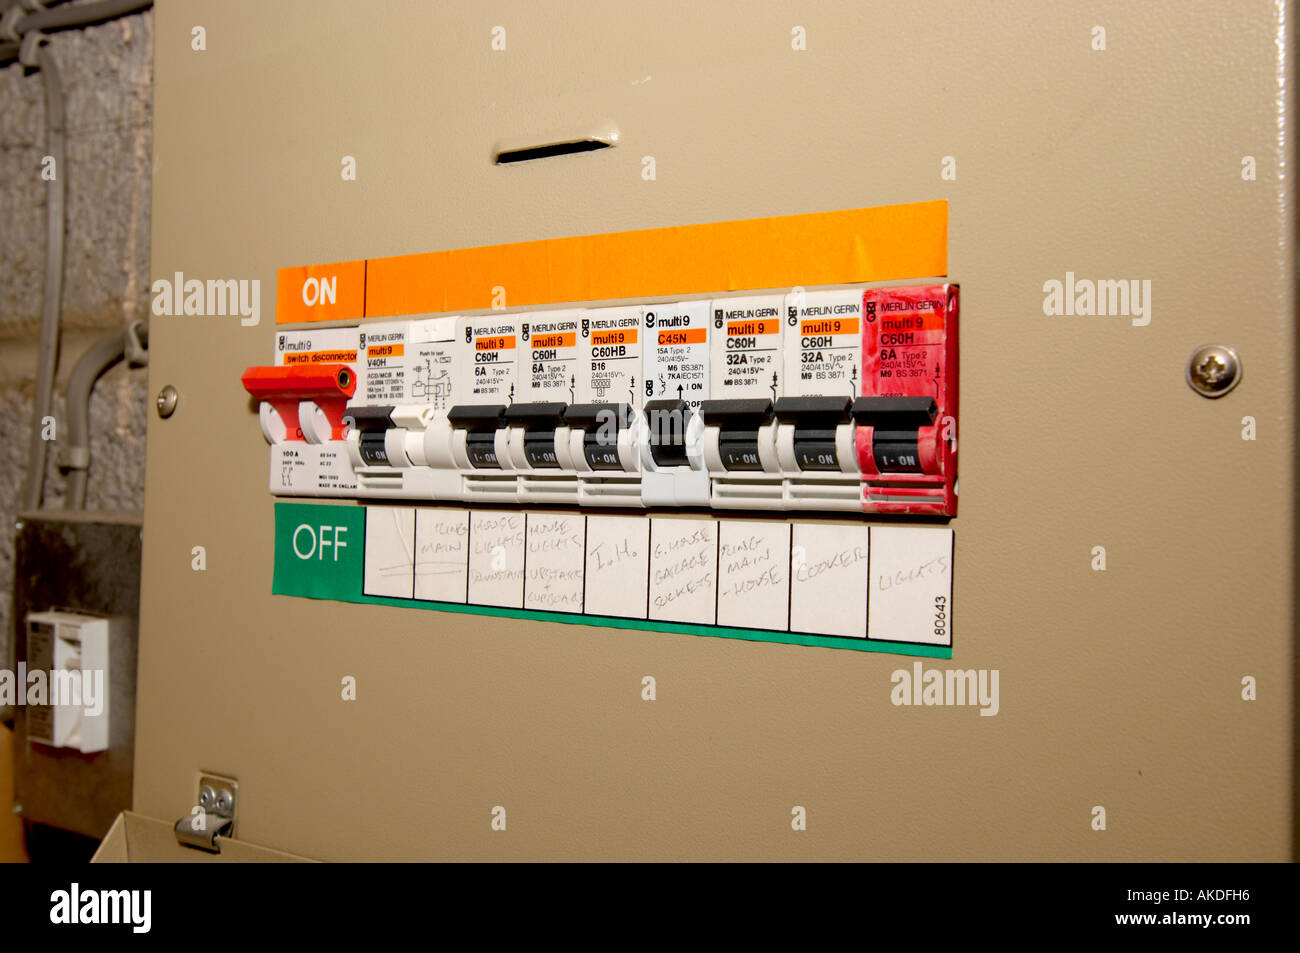 hight resolution of fuse box circuit breaker wiring diagram usedfuse box circuit breaker stock photos u0026 fuse box